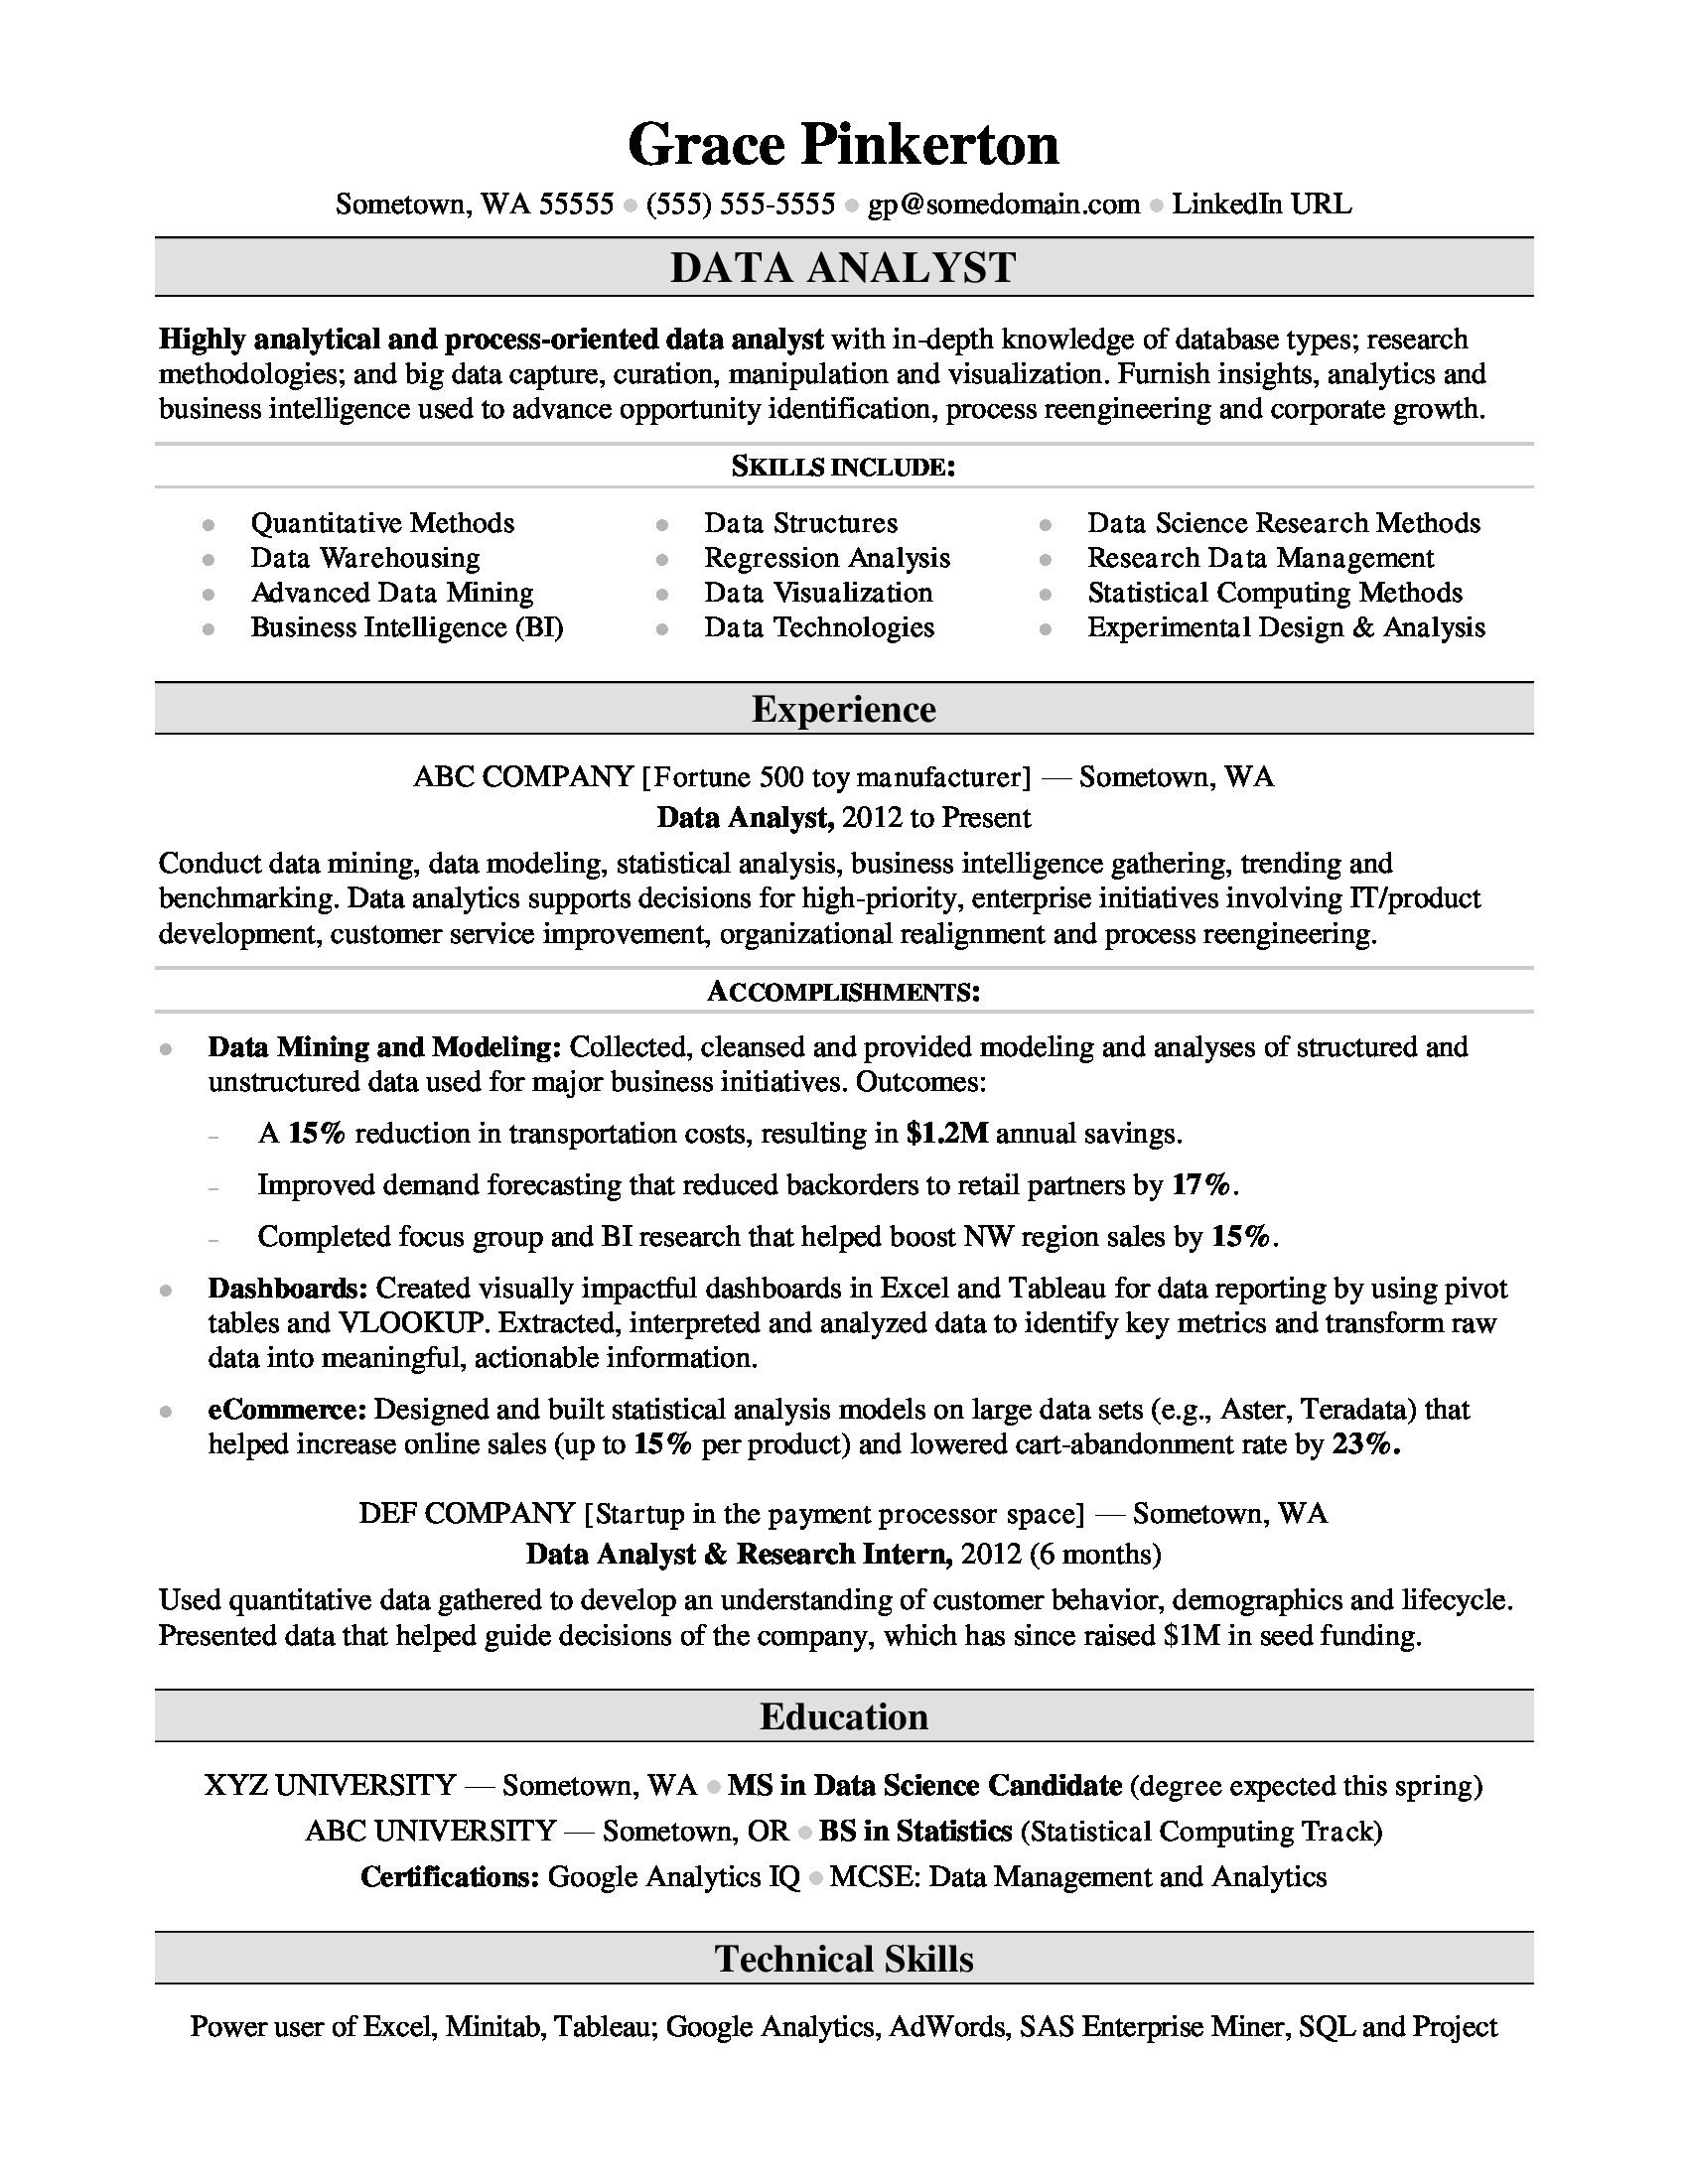 Data Analytics Resume - 20 New Data Analyst Resume Sample